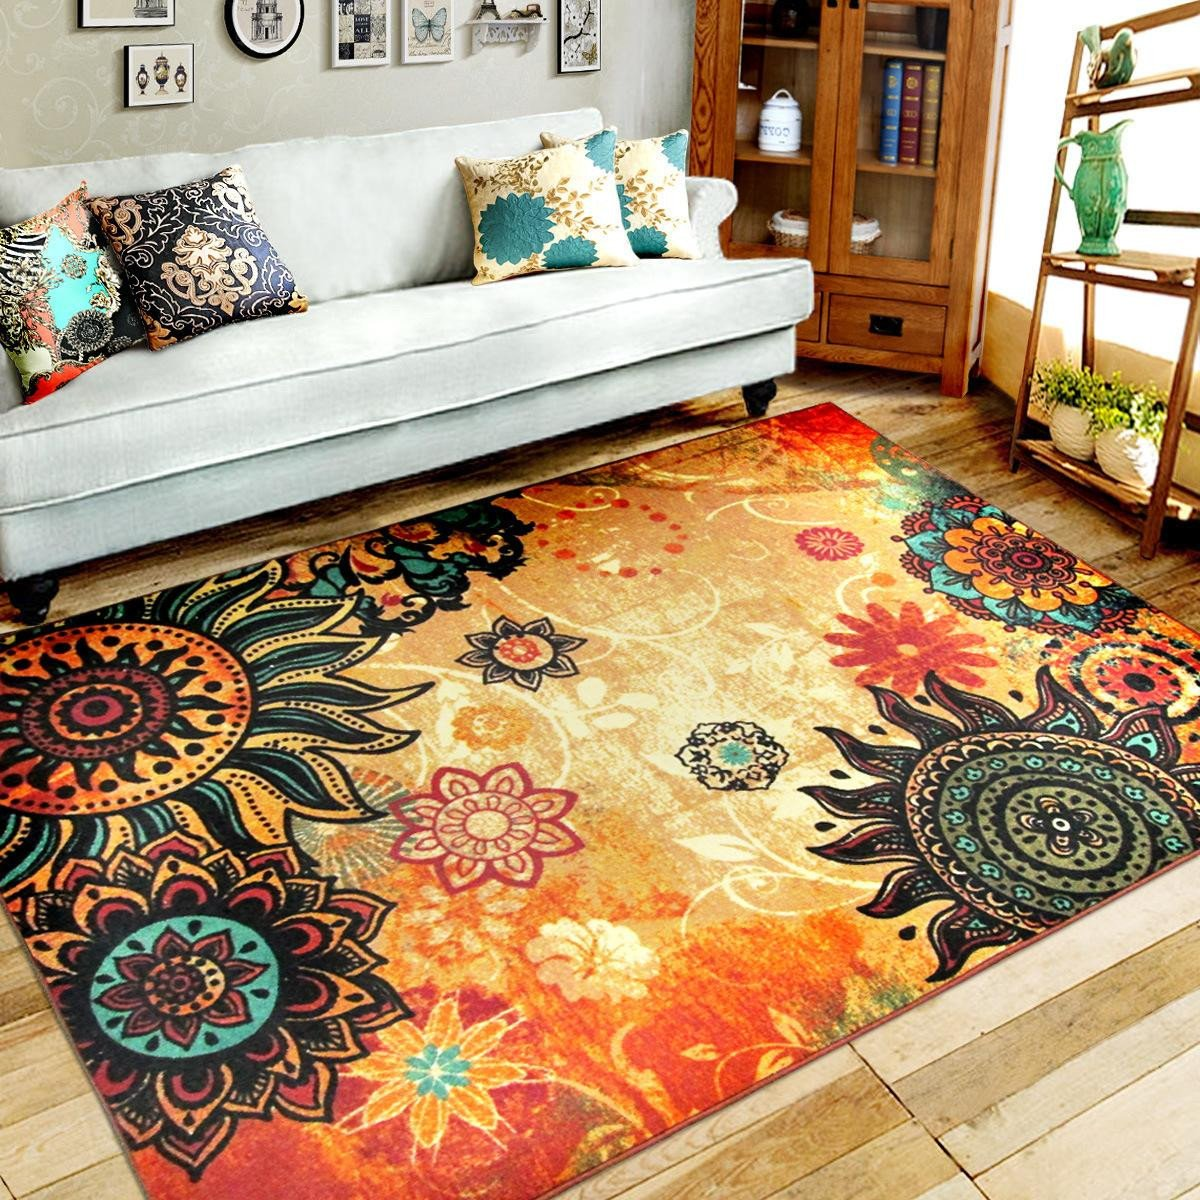 Rug On Carpet Bedroom Elegant 100x150cm Modern Home Mat Room area Rug Floor Carpet for Living Room Bedroom Carpets Mats Tapete Para Sala Alfombra Tapis Salon Iranian Carpets